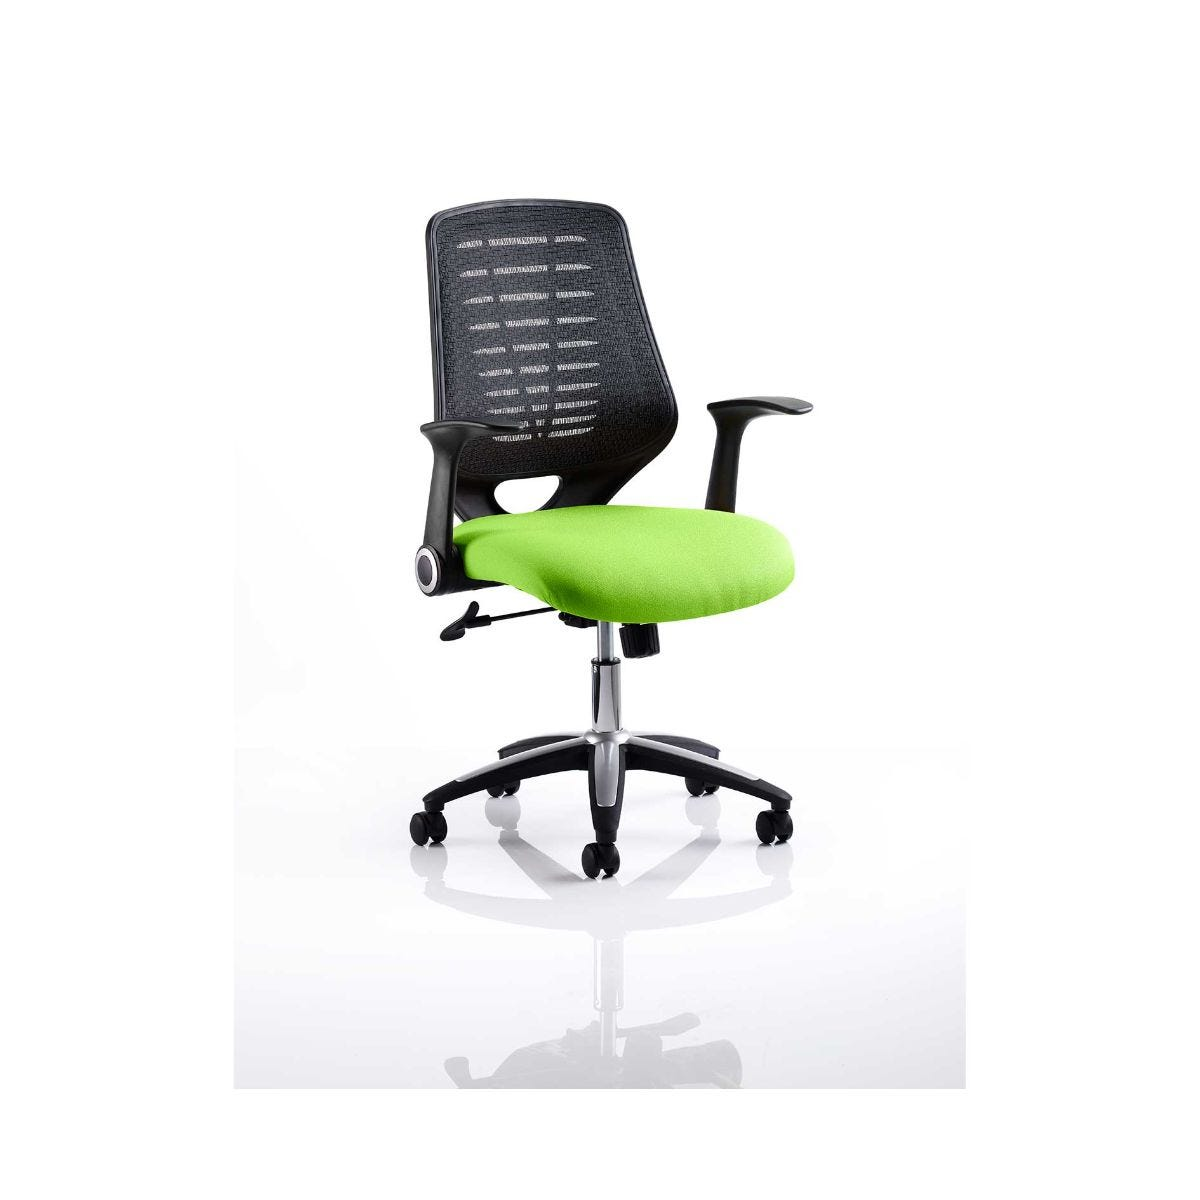 Relay Mesh Back Office Chair, Swizzle